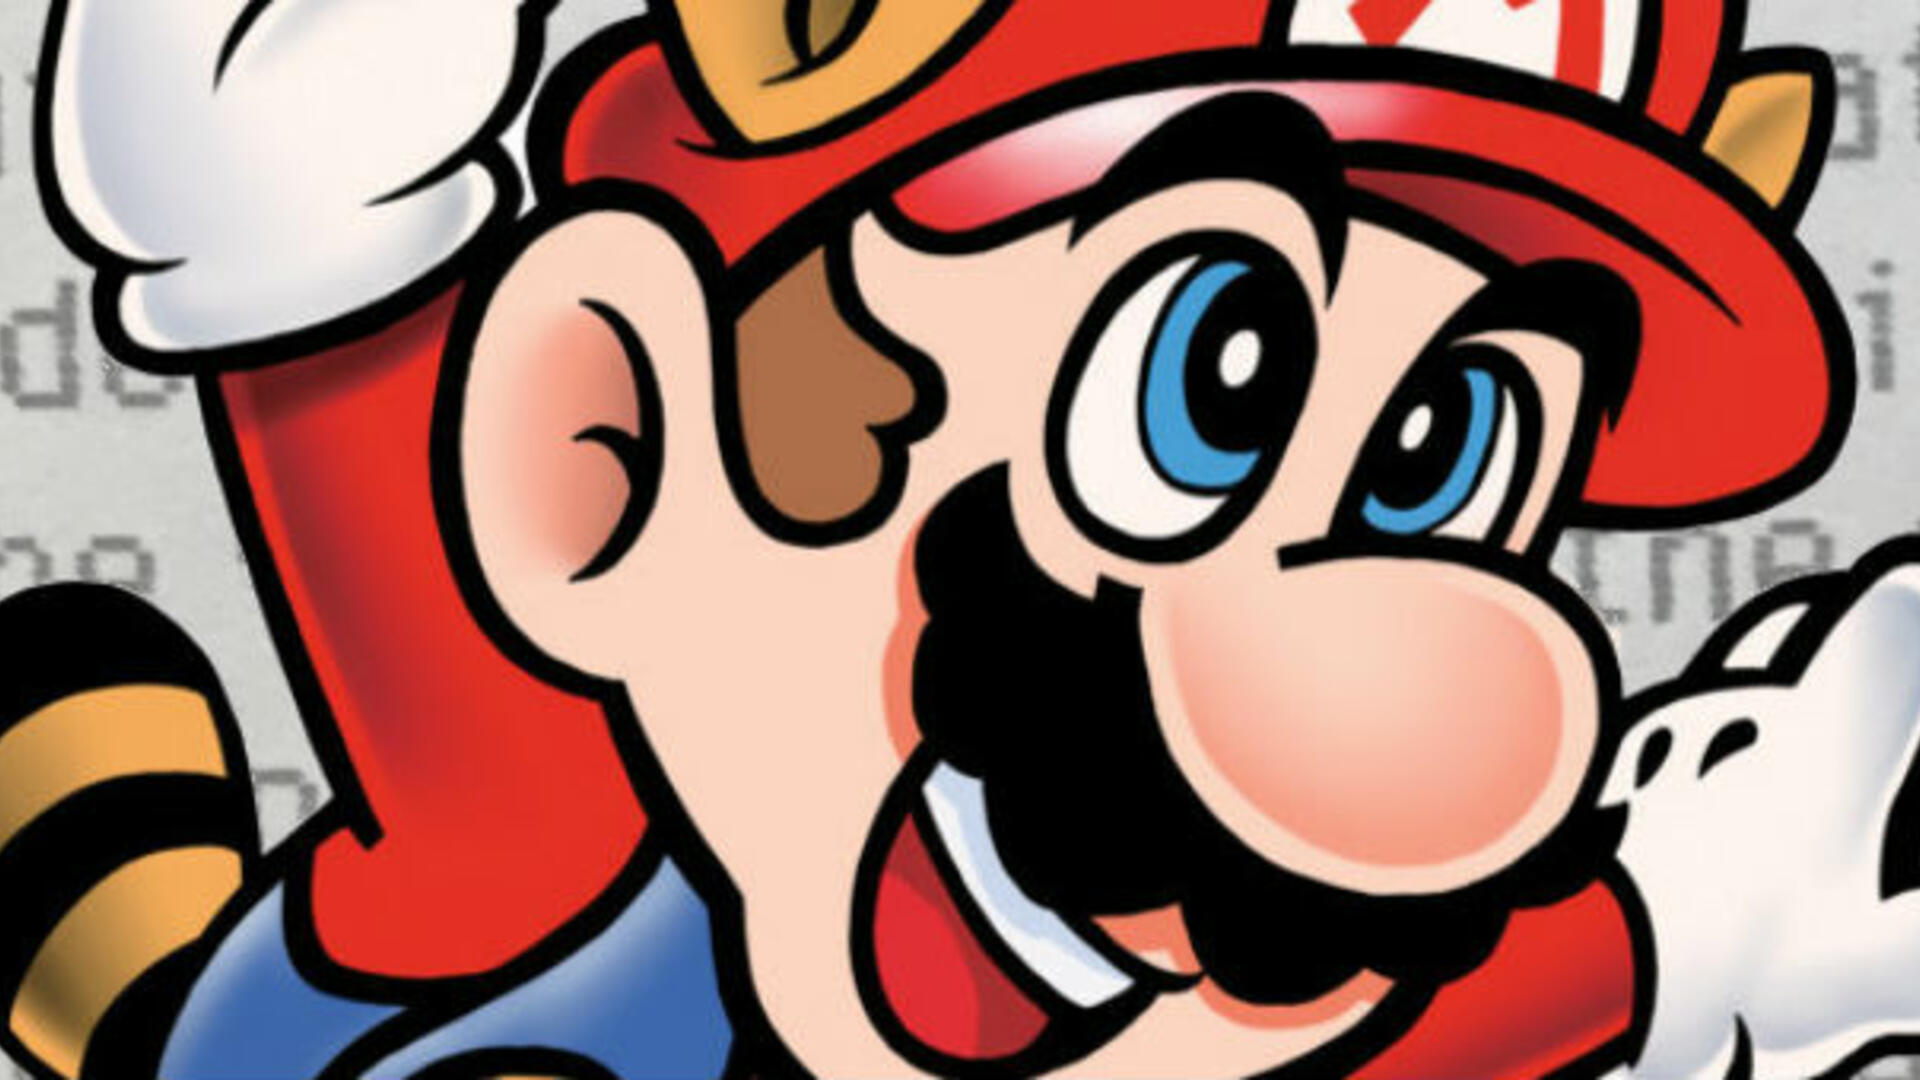 For Super Mario Bros 3's 30th Anniversary, Let's Look Back on This Mario Fanfiction I Wrote When I Was 10